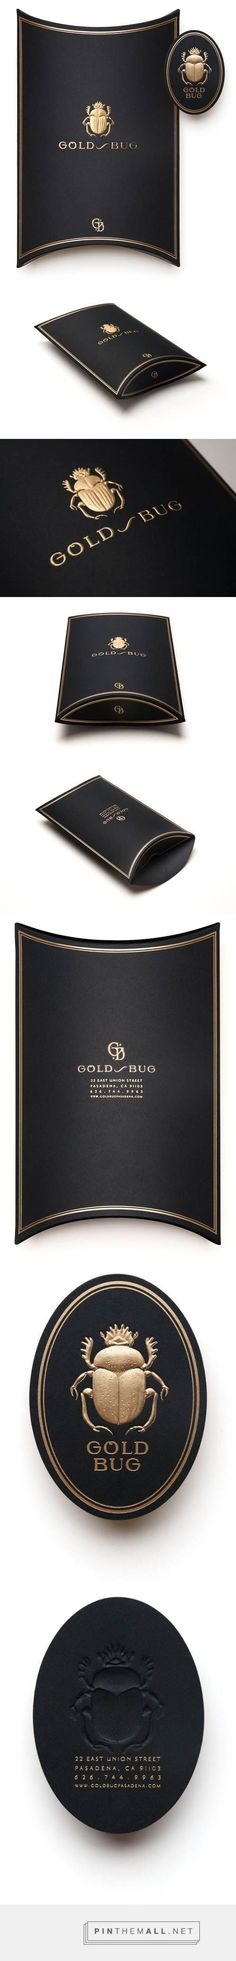 Luxury black and gold packaging